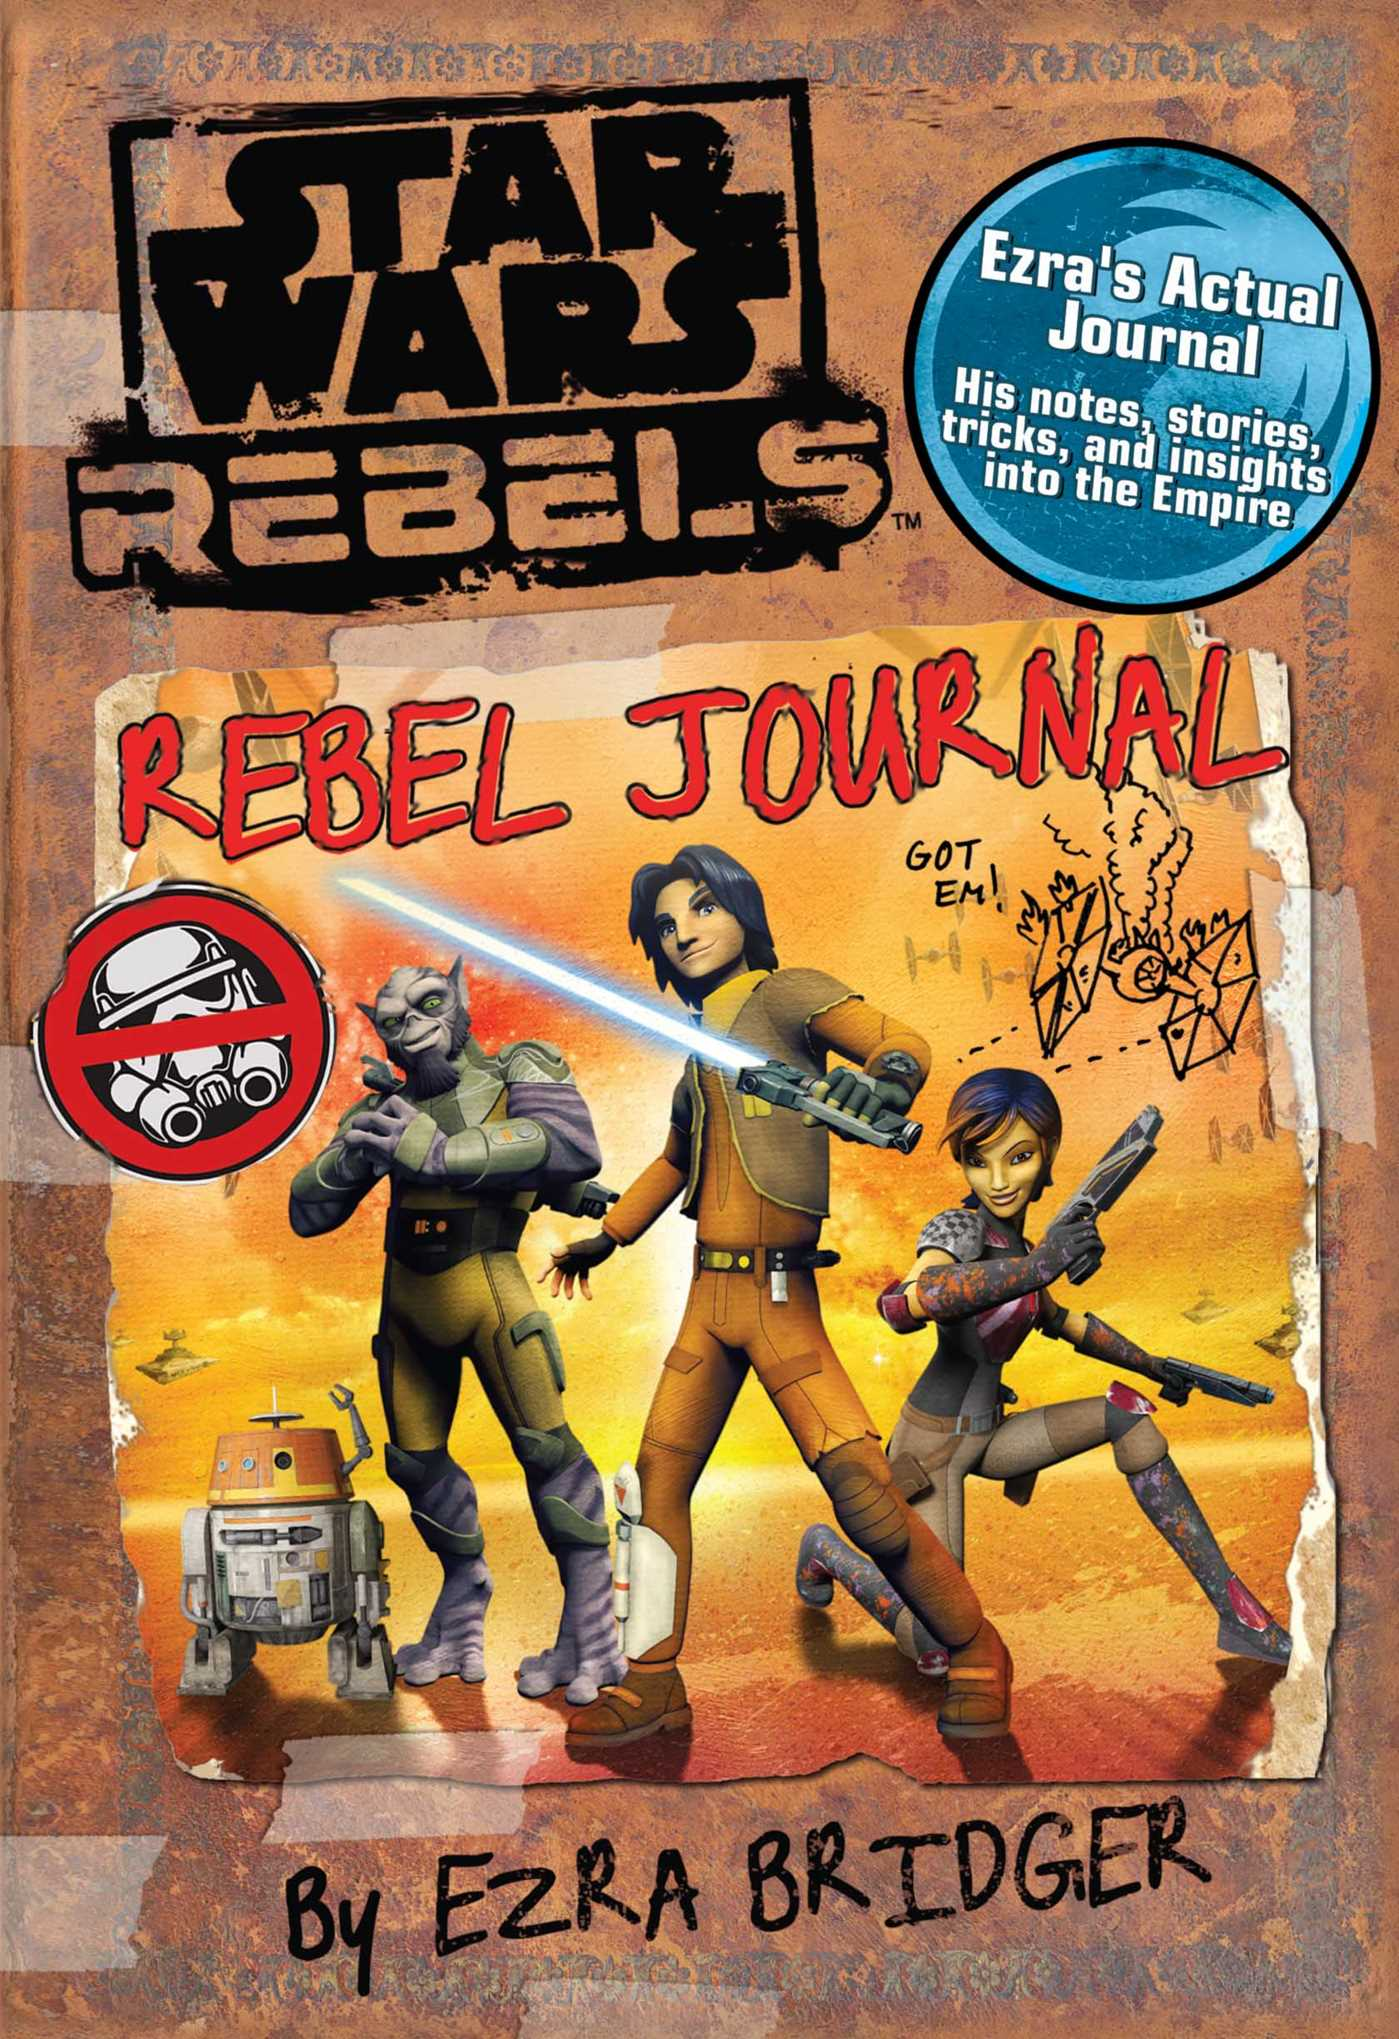 Star Wars Rebels: Rebel Journal, by Ezra Bridger